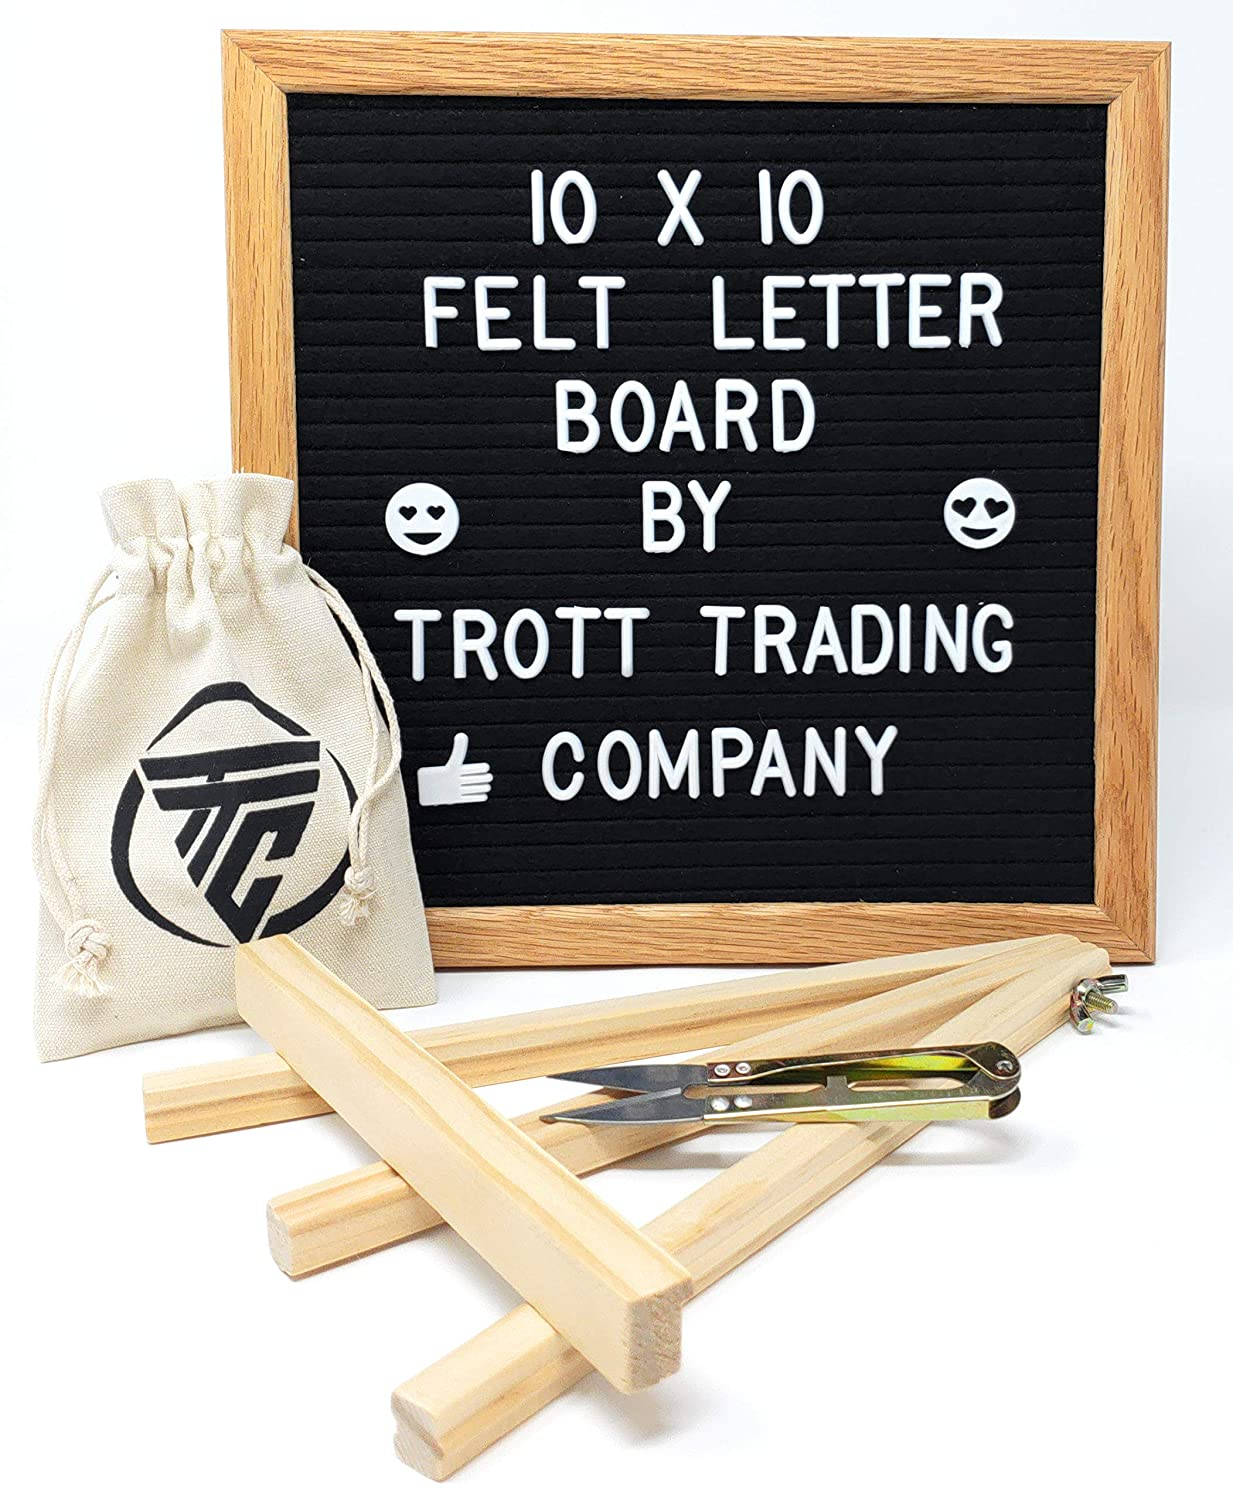 Felt Letter Board with Wooden Stand. Message Board That Includes 335 White Letters and Emoji. Black 10x10 inch Letter Board with Oak Frame, Scissors, Wall Hanger, Stand and Letter Bag. TrottTradingCompany MCBLK001